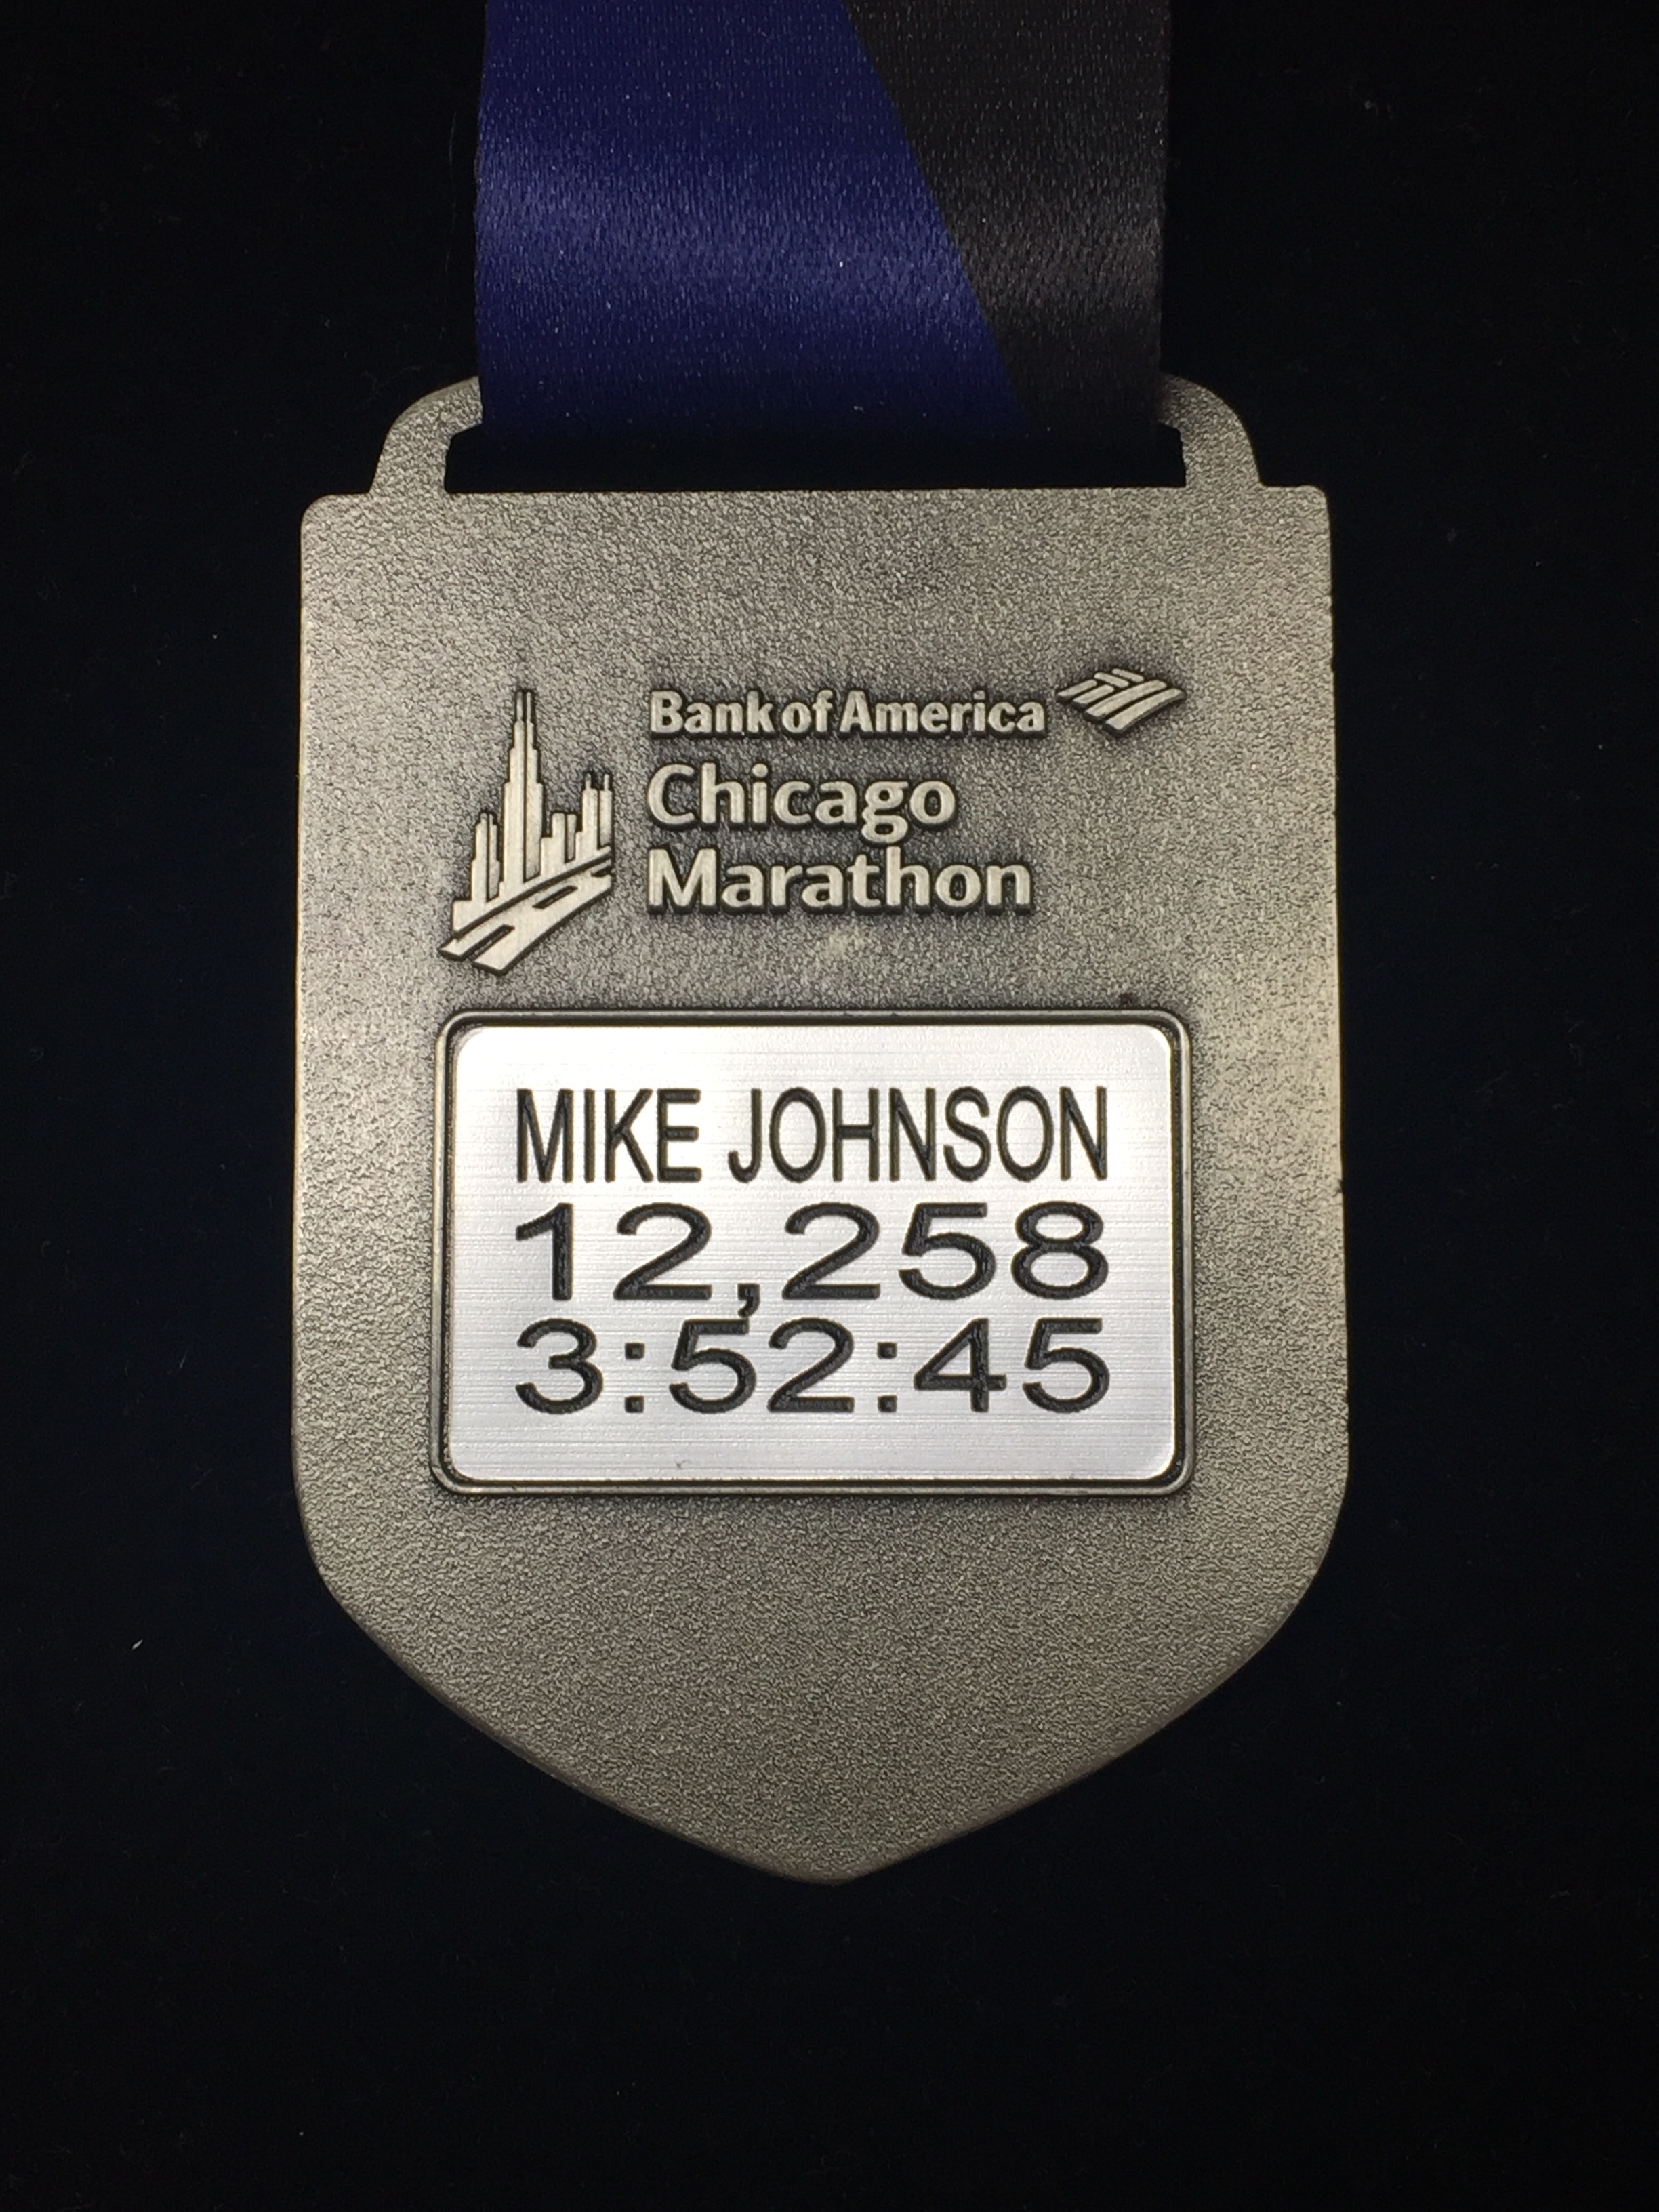 2016-chicago-marathon-etags3